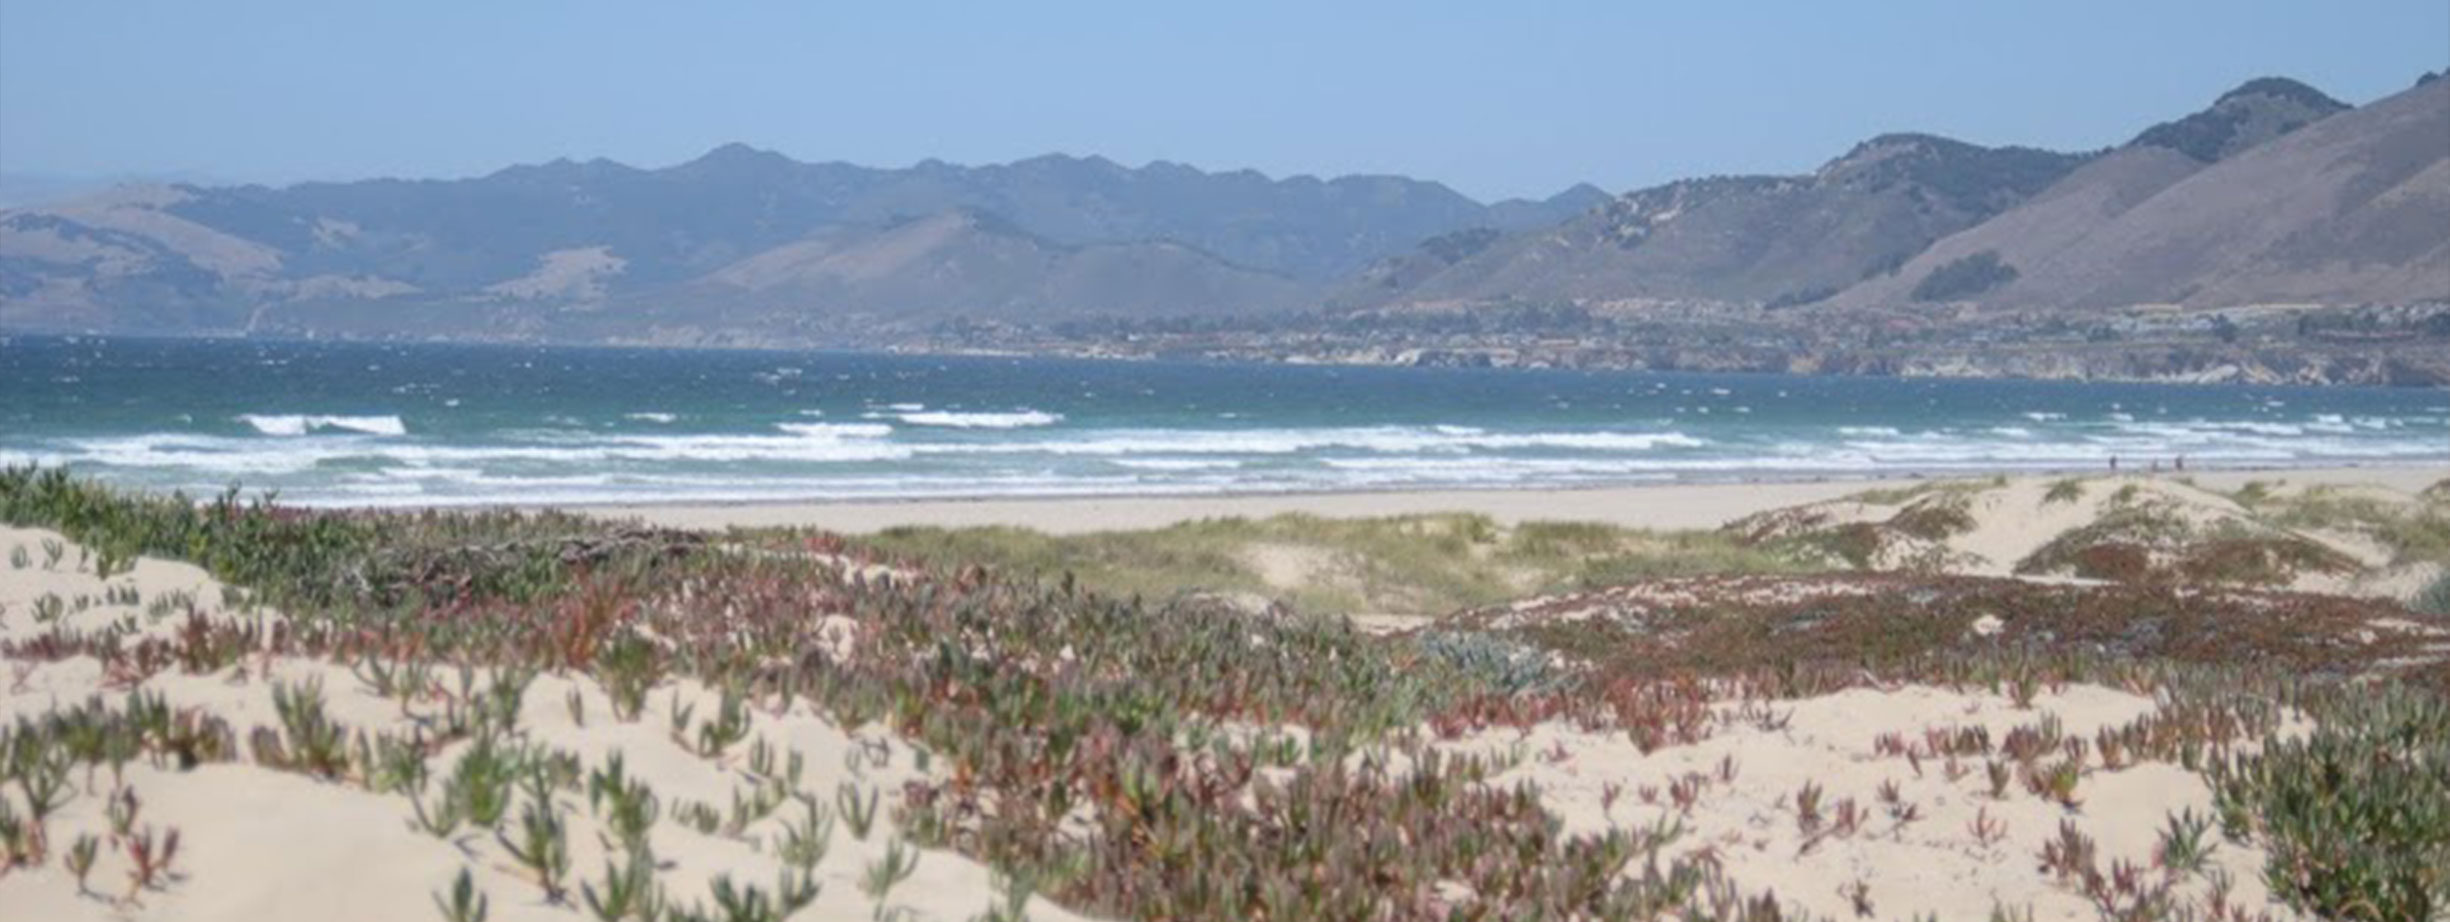 Photo of the sandy coast in San Luis Obispo.